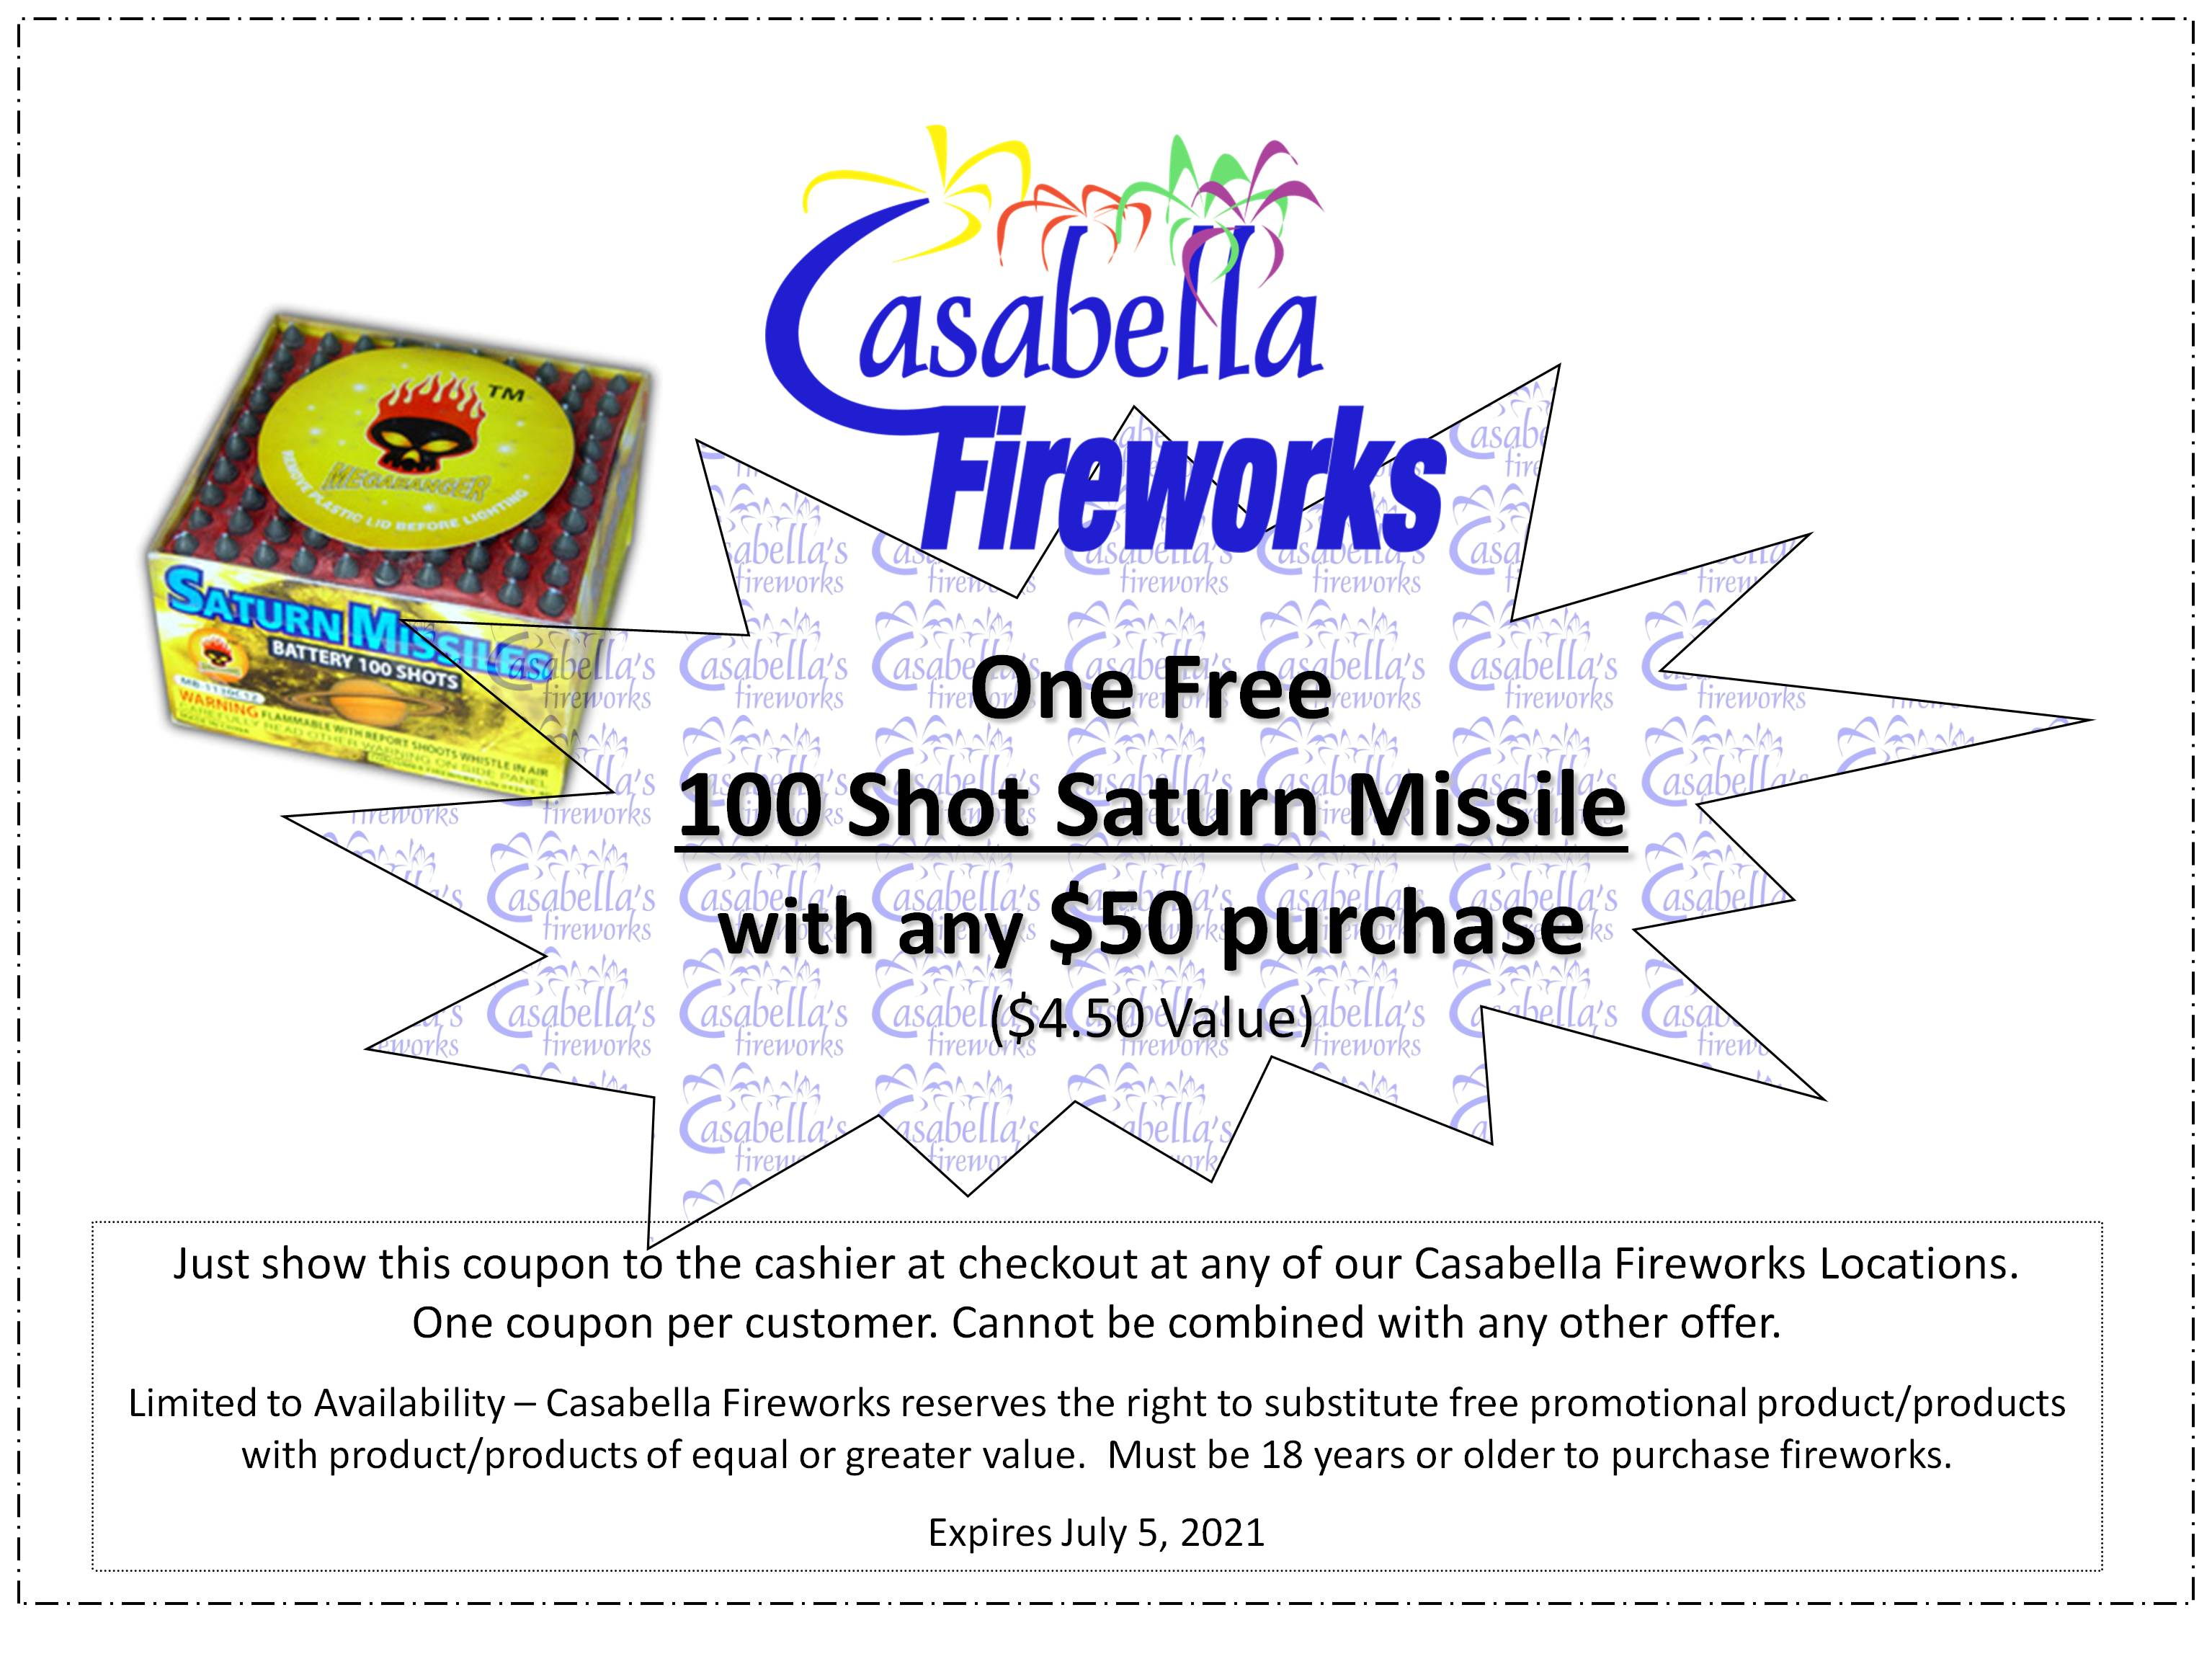 Fireworks discount coupons